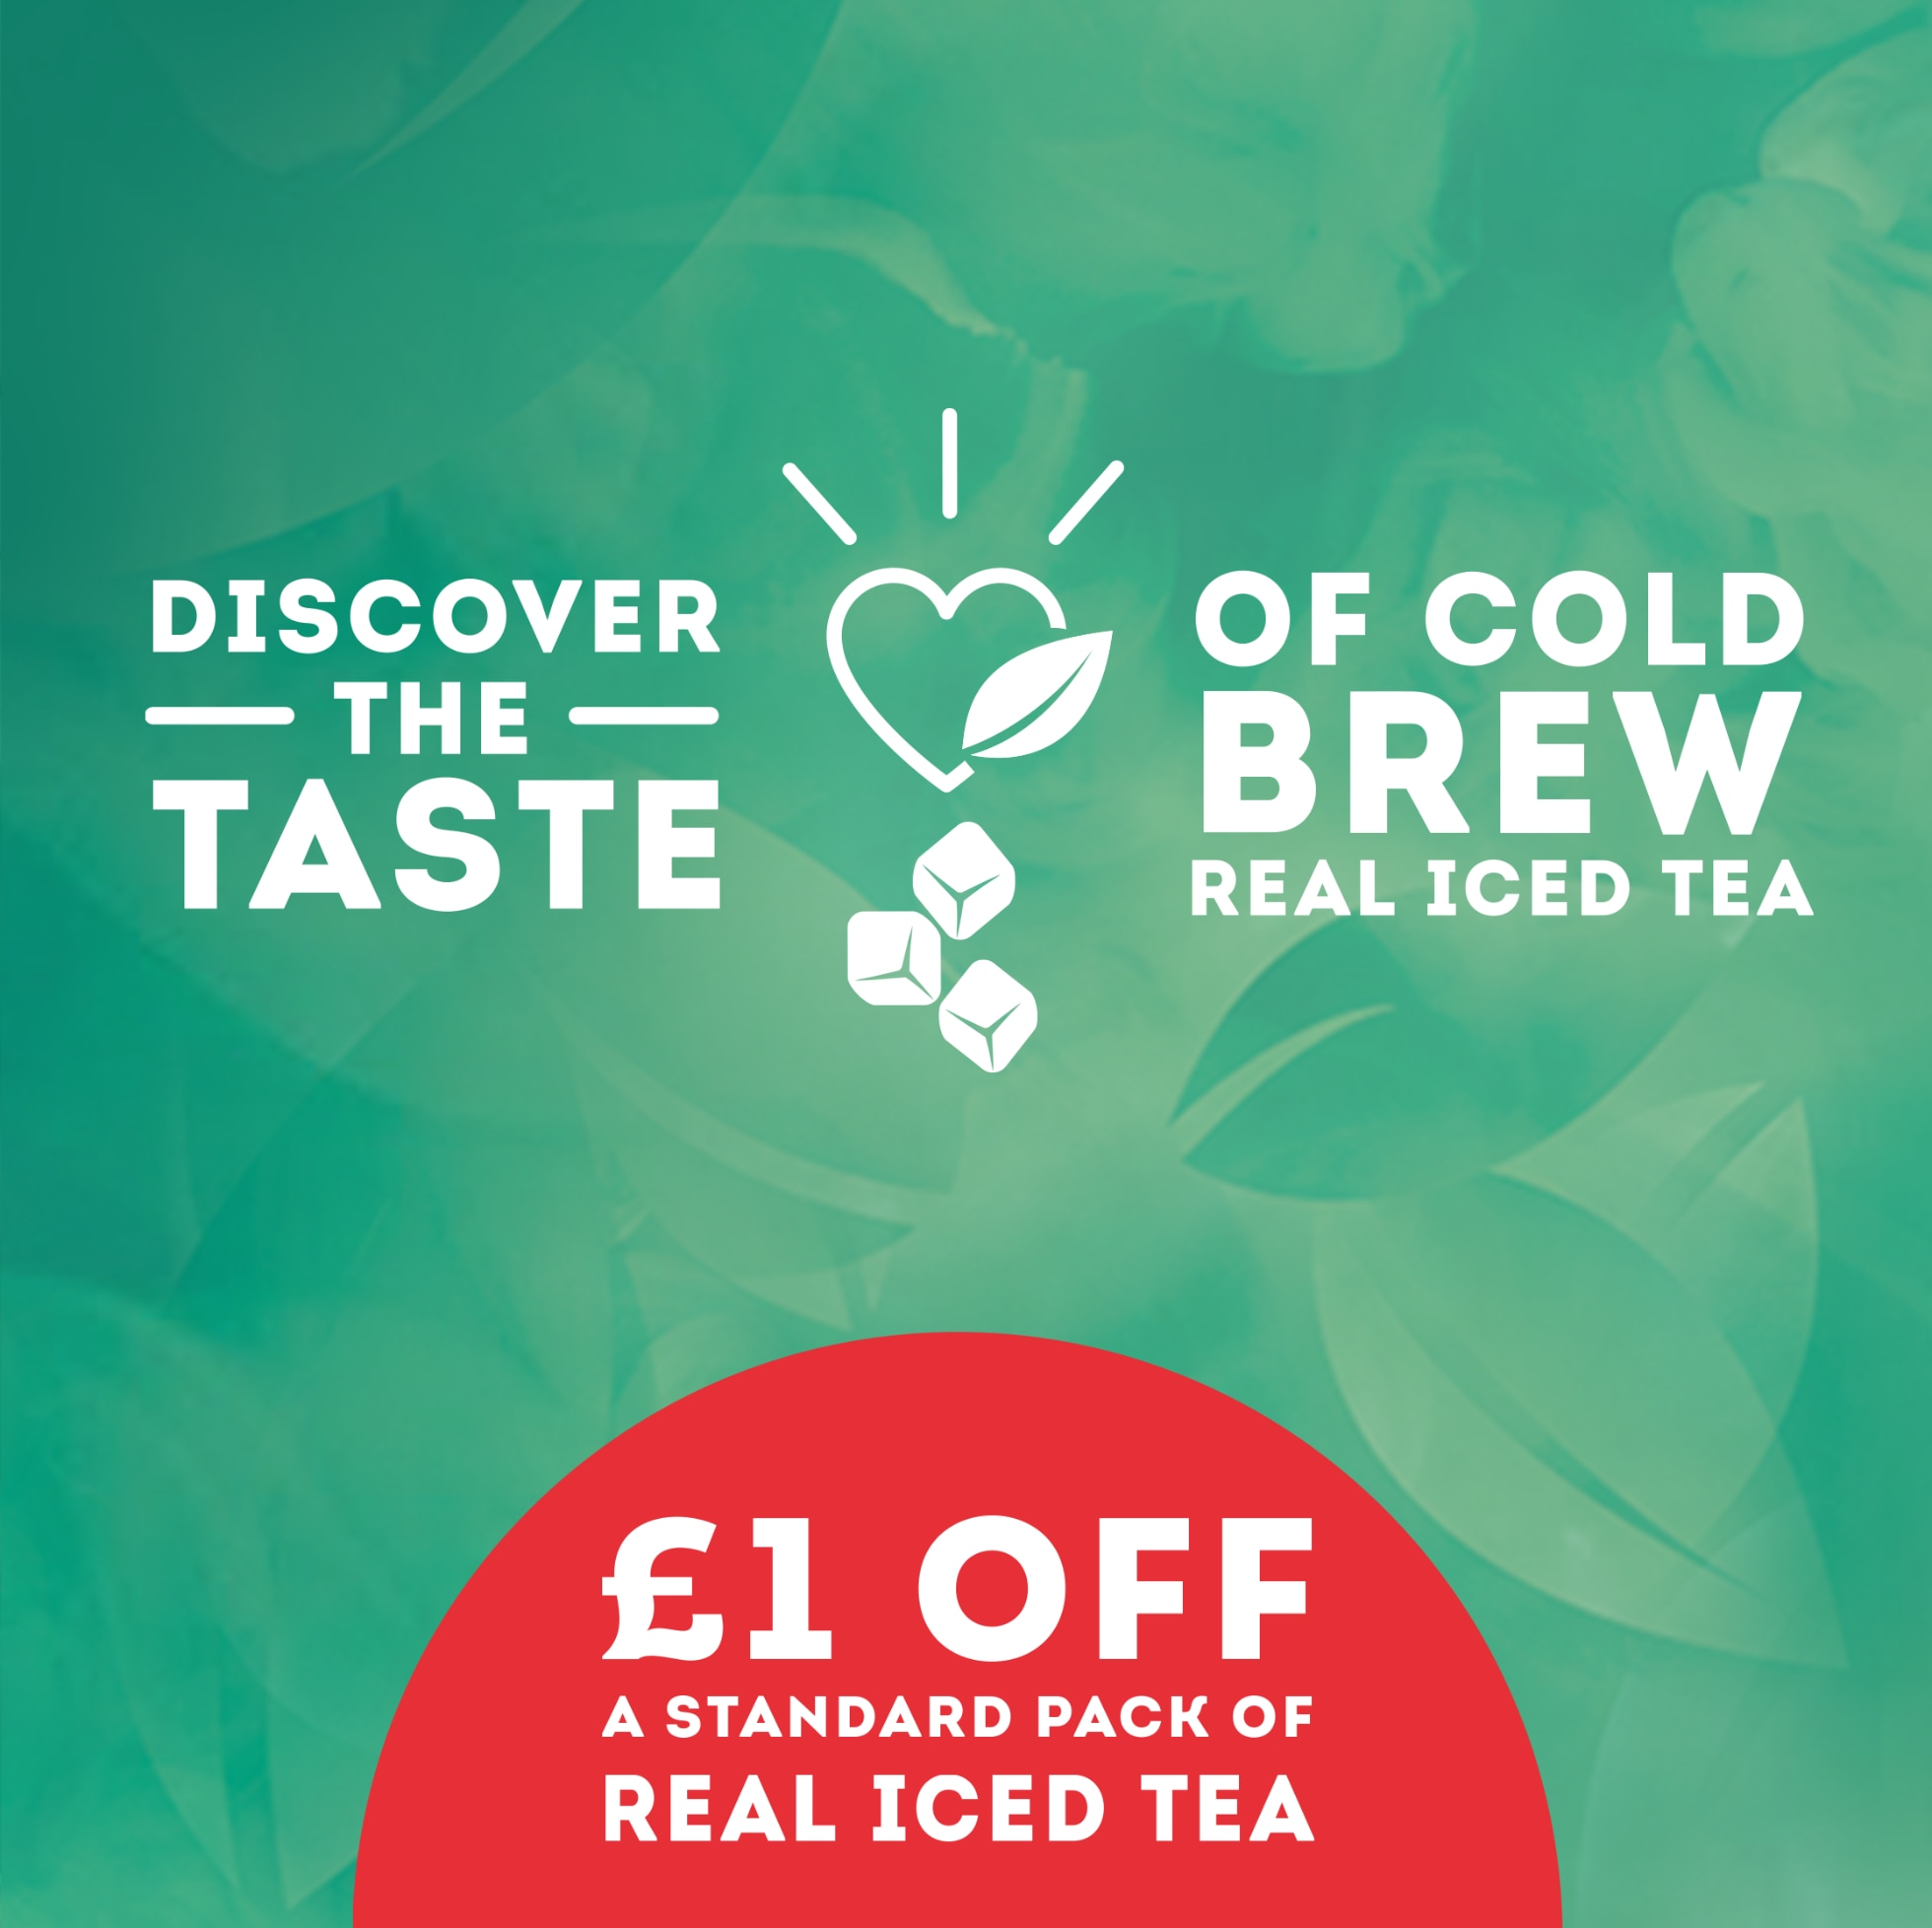 Real Iced Tea £1 Off Offers Preview image